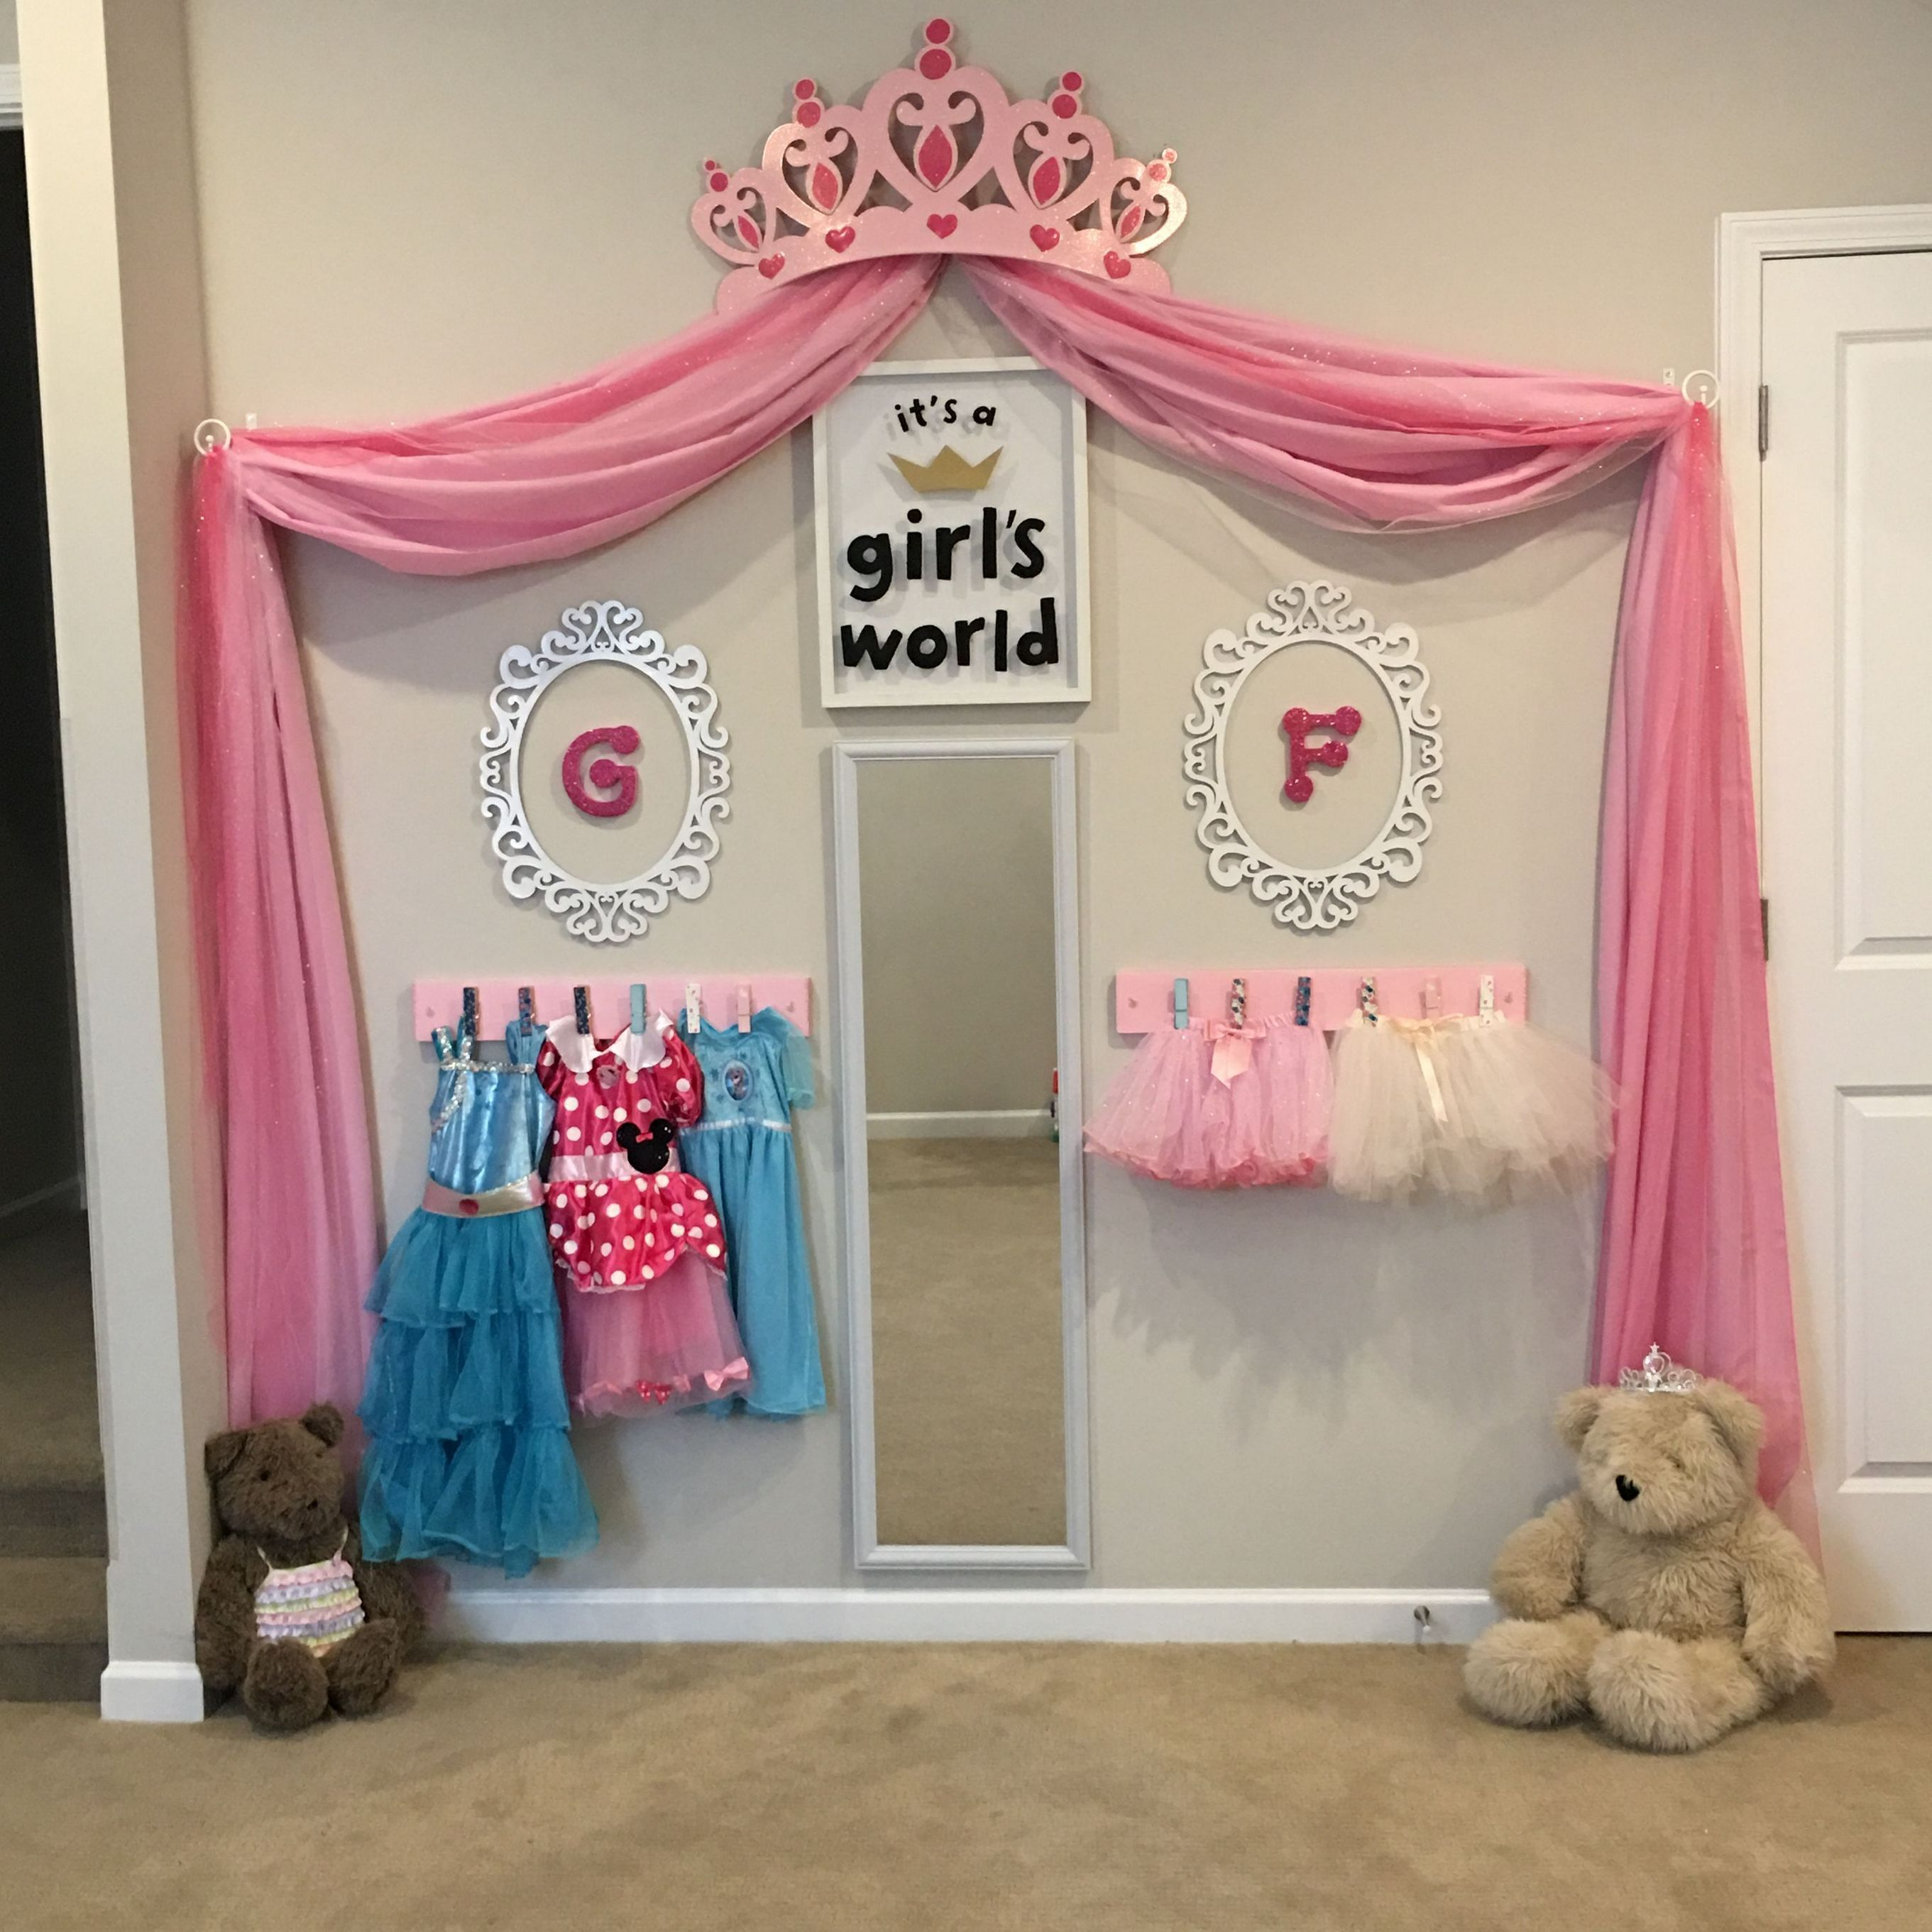 21 Types Of Kids Rooms Ideas For Girls Toddler Daughters Princess Bedrooms 63 Freehomeideas Com Girls Princess Room Princess Bedrooms Baby Girl Room